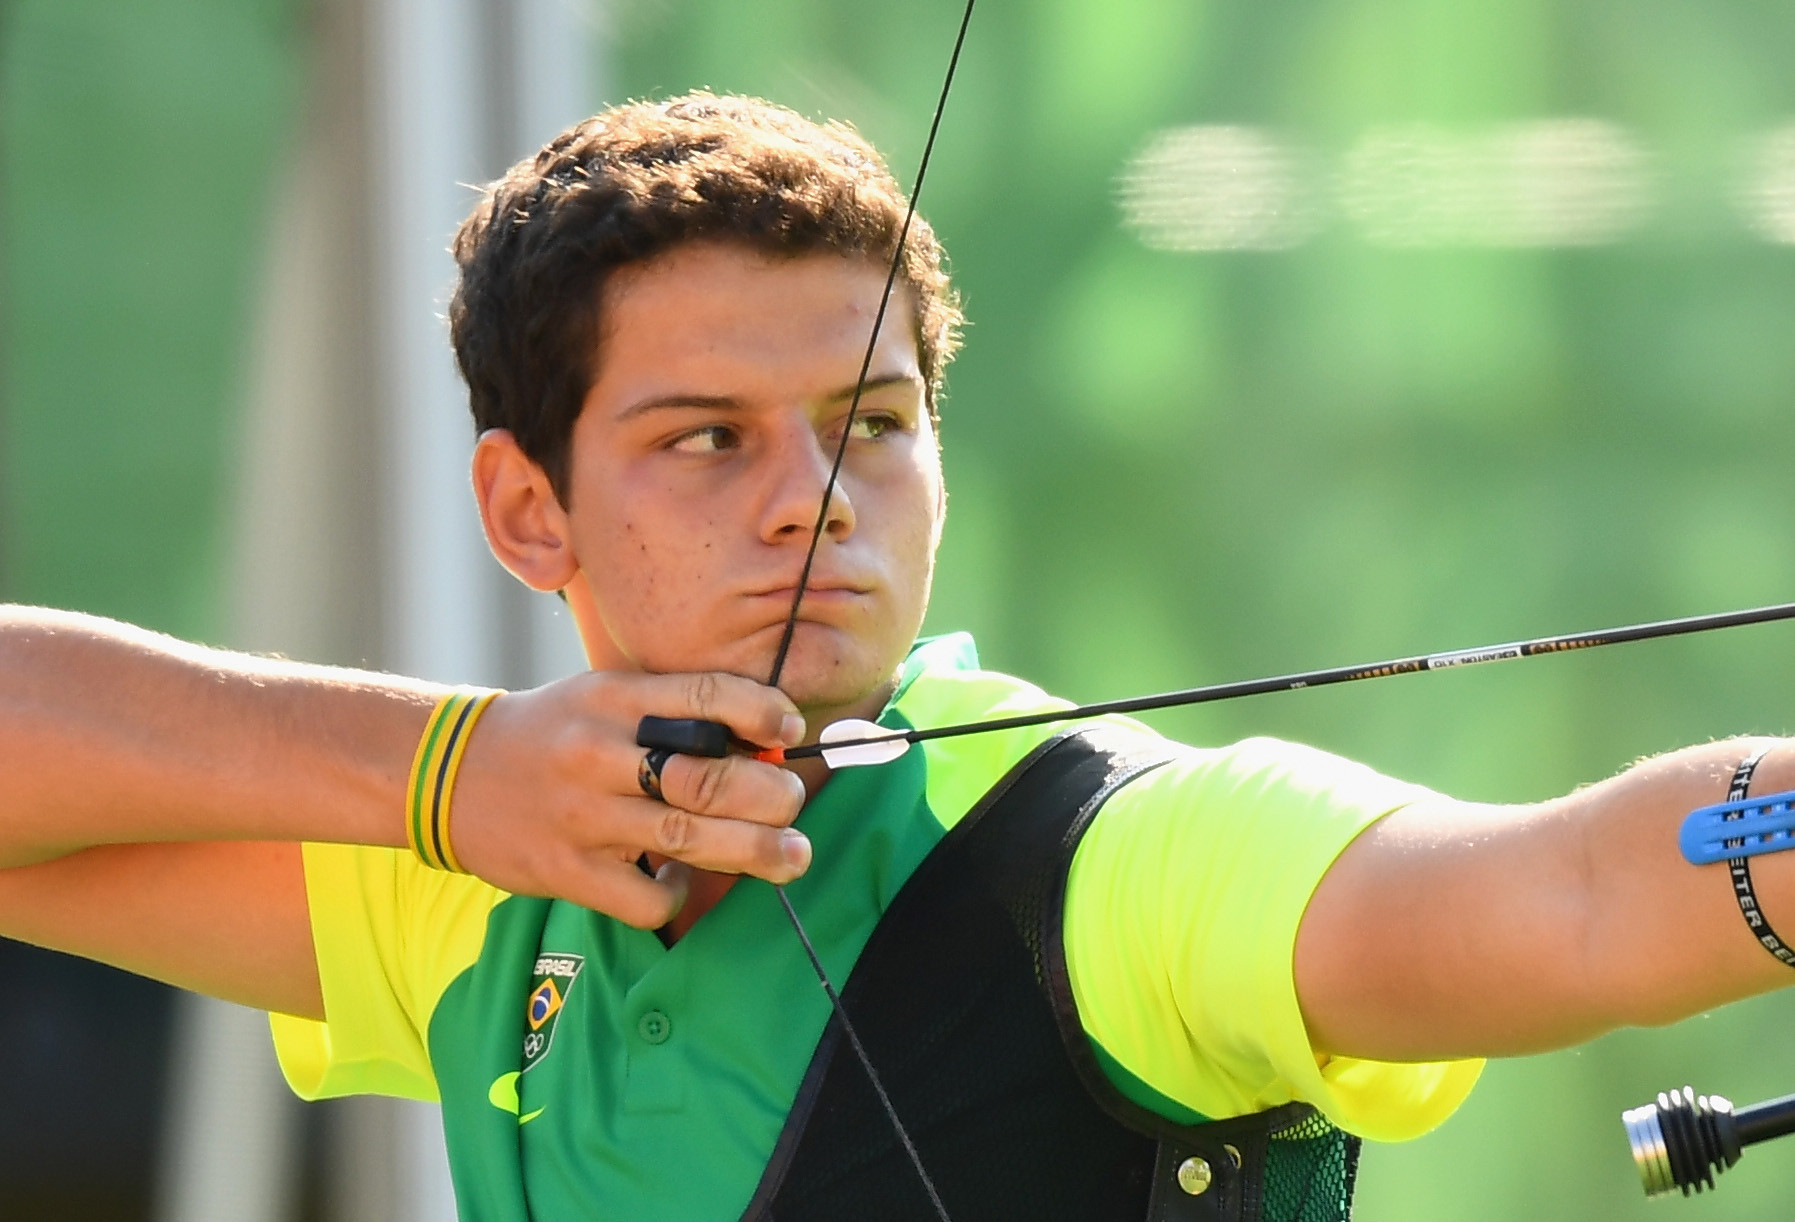 Qualification begins at Pan and Parapan American Archery Championships